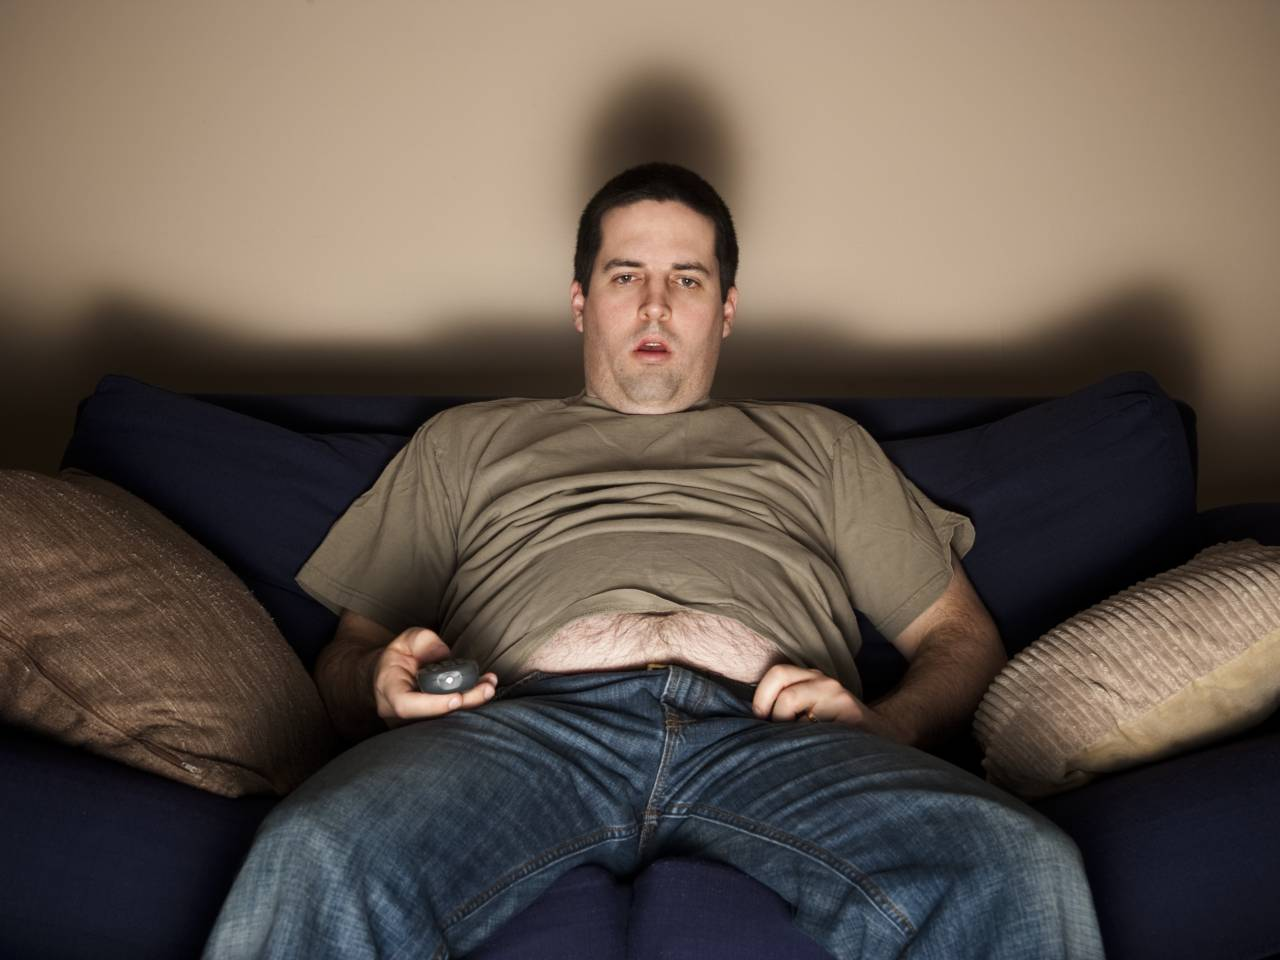 This is the man who skips the gym. Do you want to be like him? If so, stop reading now.